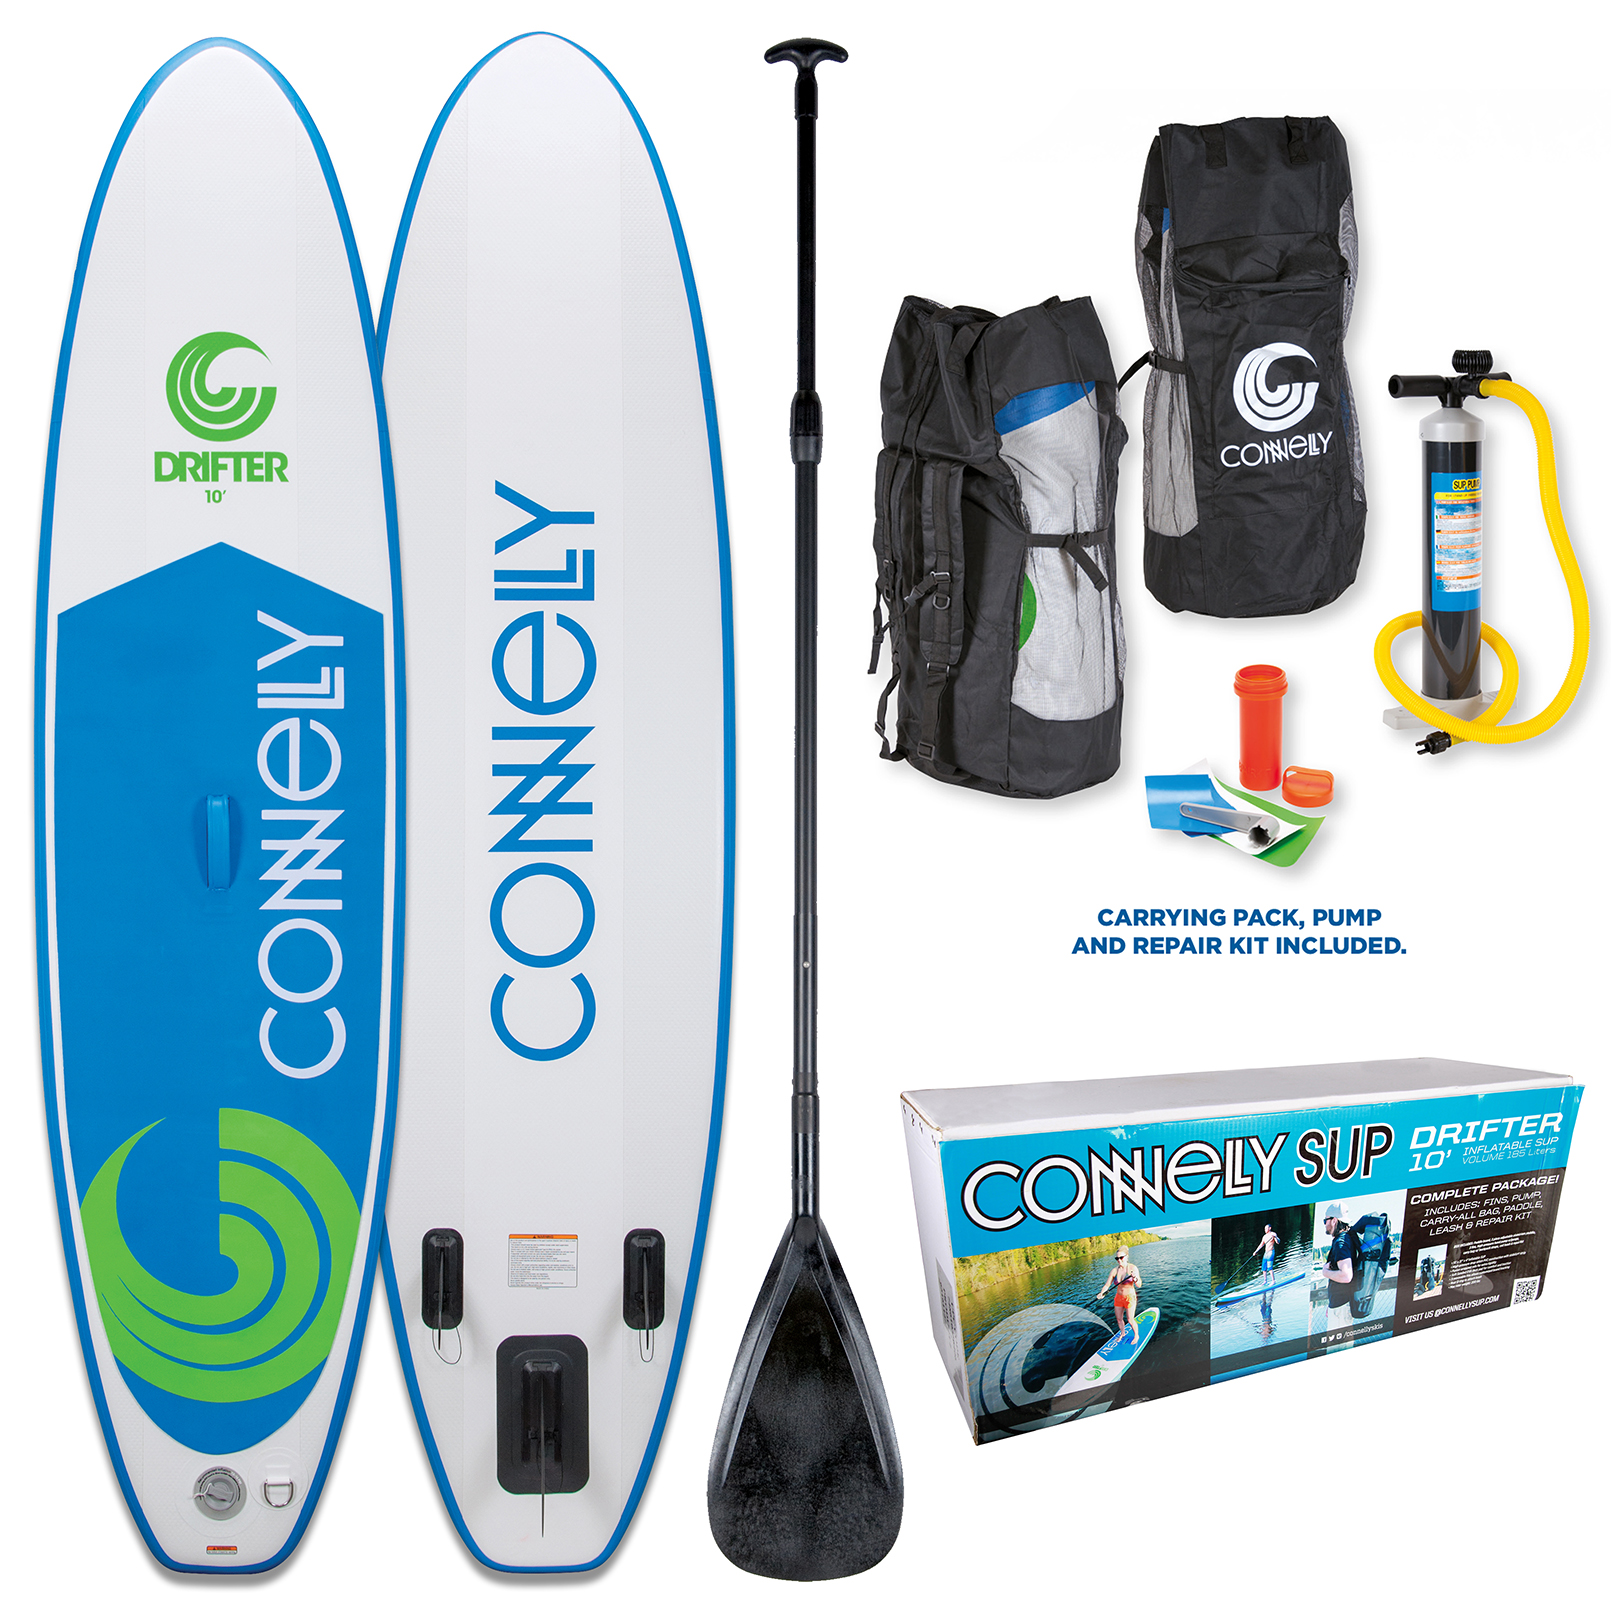 2017 DRIFTER INFLATABLE STAND-UP PADDLE BOARD - PACKAGE CONNELLY 2016